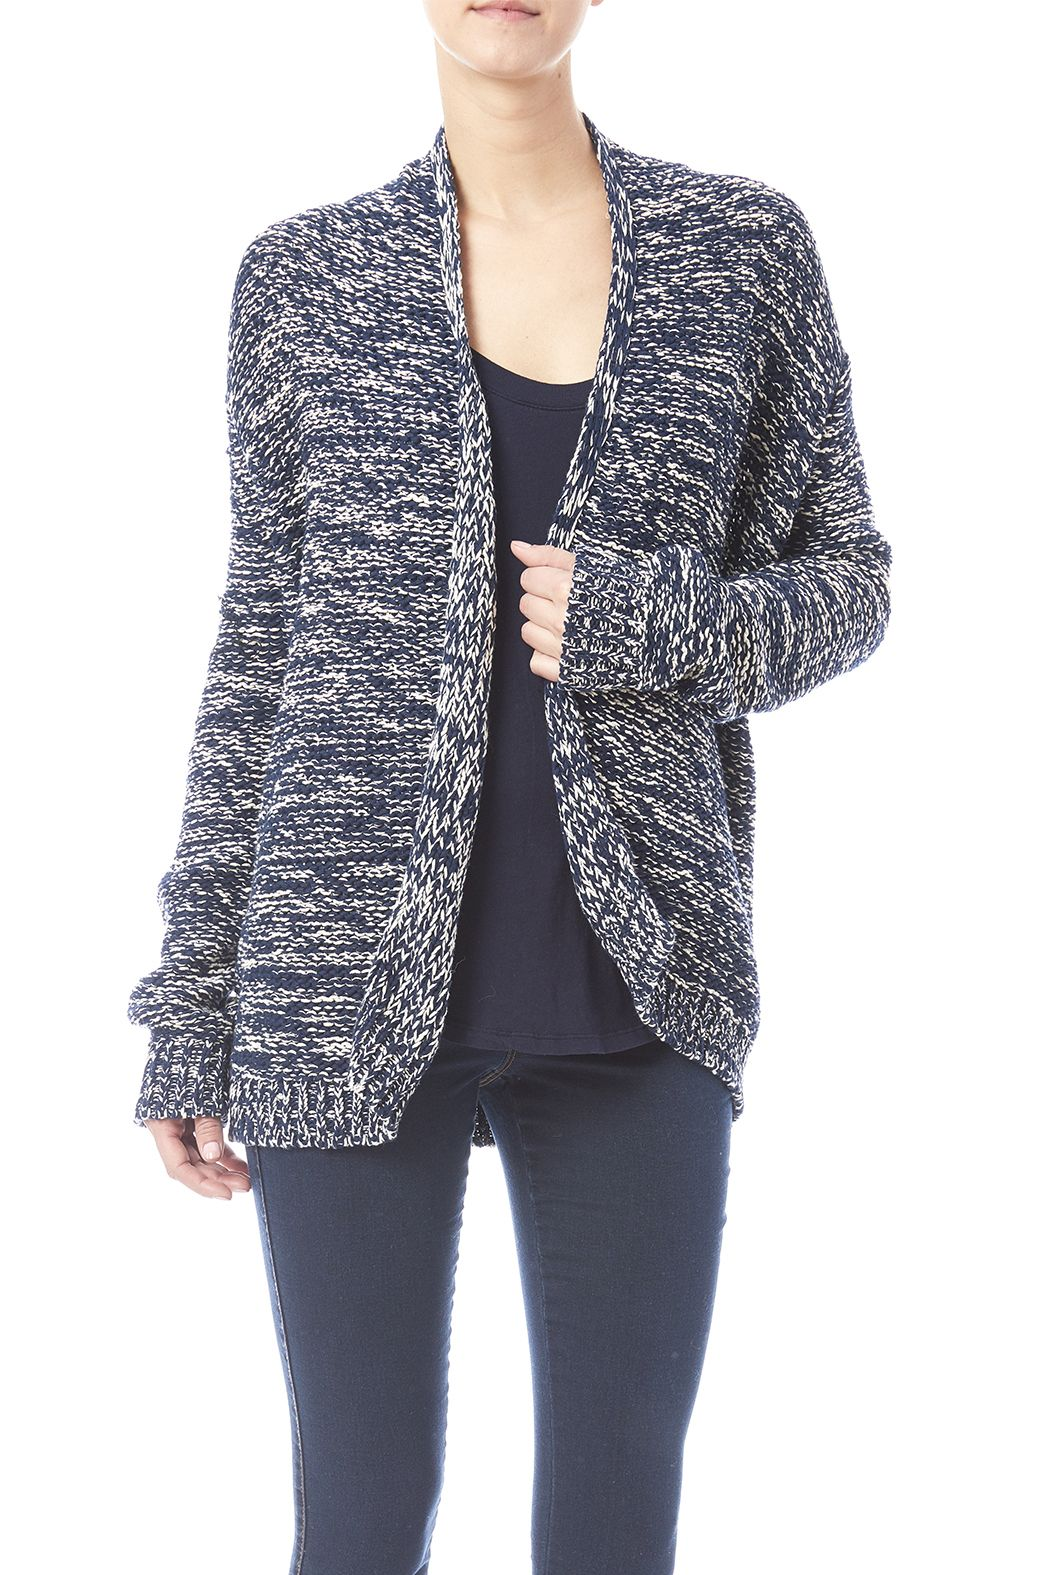 h.one Navy And White Cardigan | White cardigan, Navy and Boutique